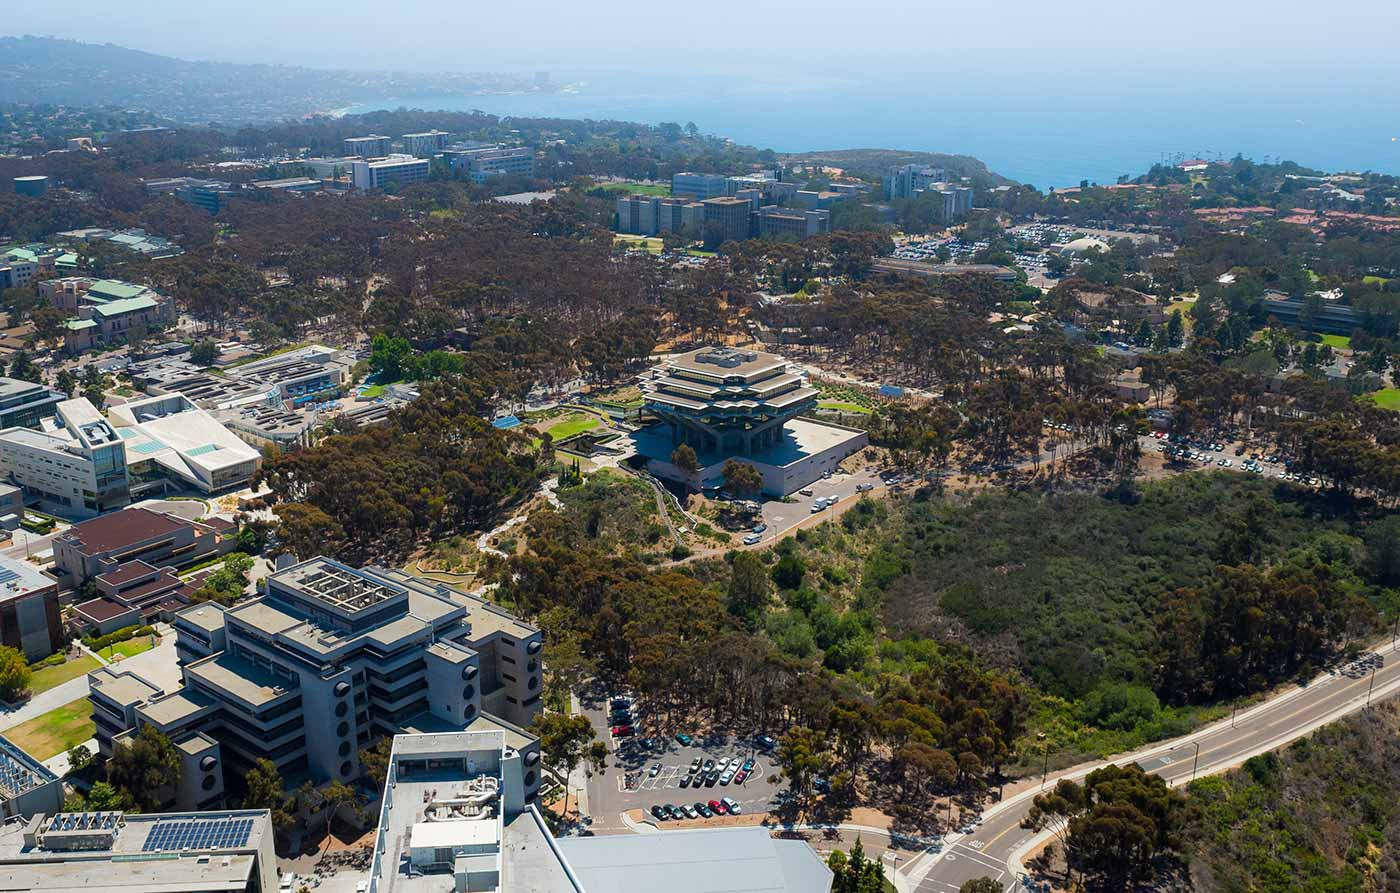 Image: The University of California, San Diego is ranked the 14th best university in the world for the third consecutive year.